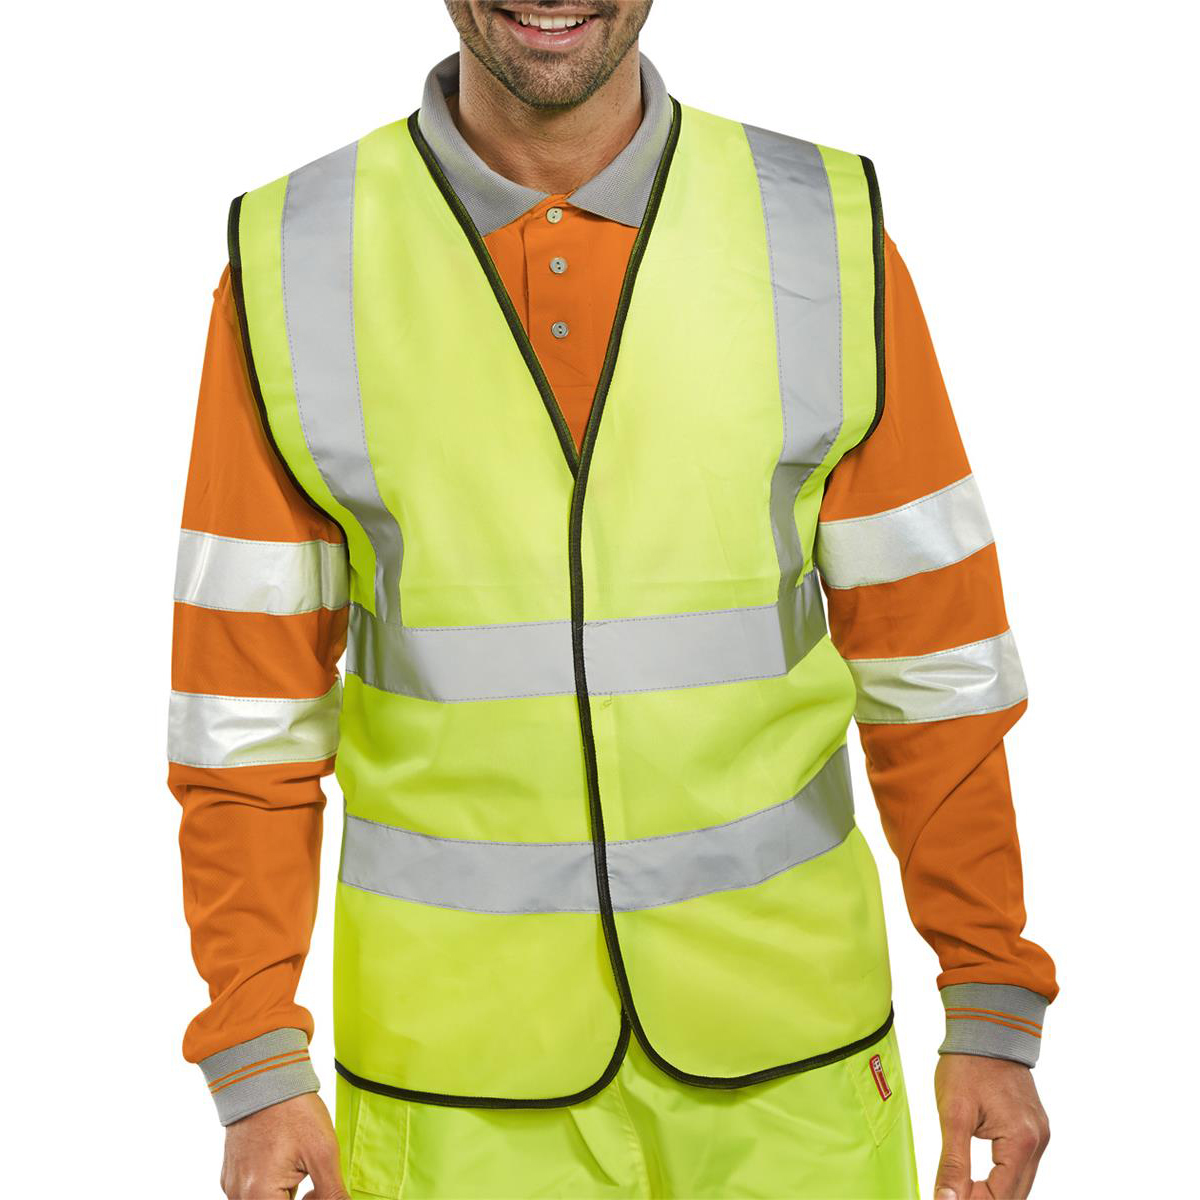 High Visibility Bseen High Visibility Waistcoat Full App Medium Yellow/Black Piping Ref WCENGM *Up to 3 Day Leadtime*